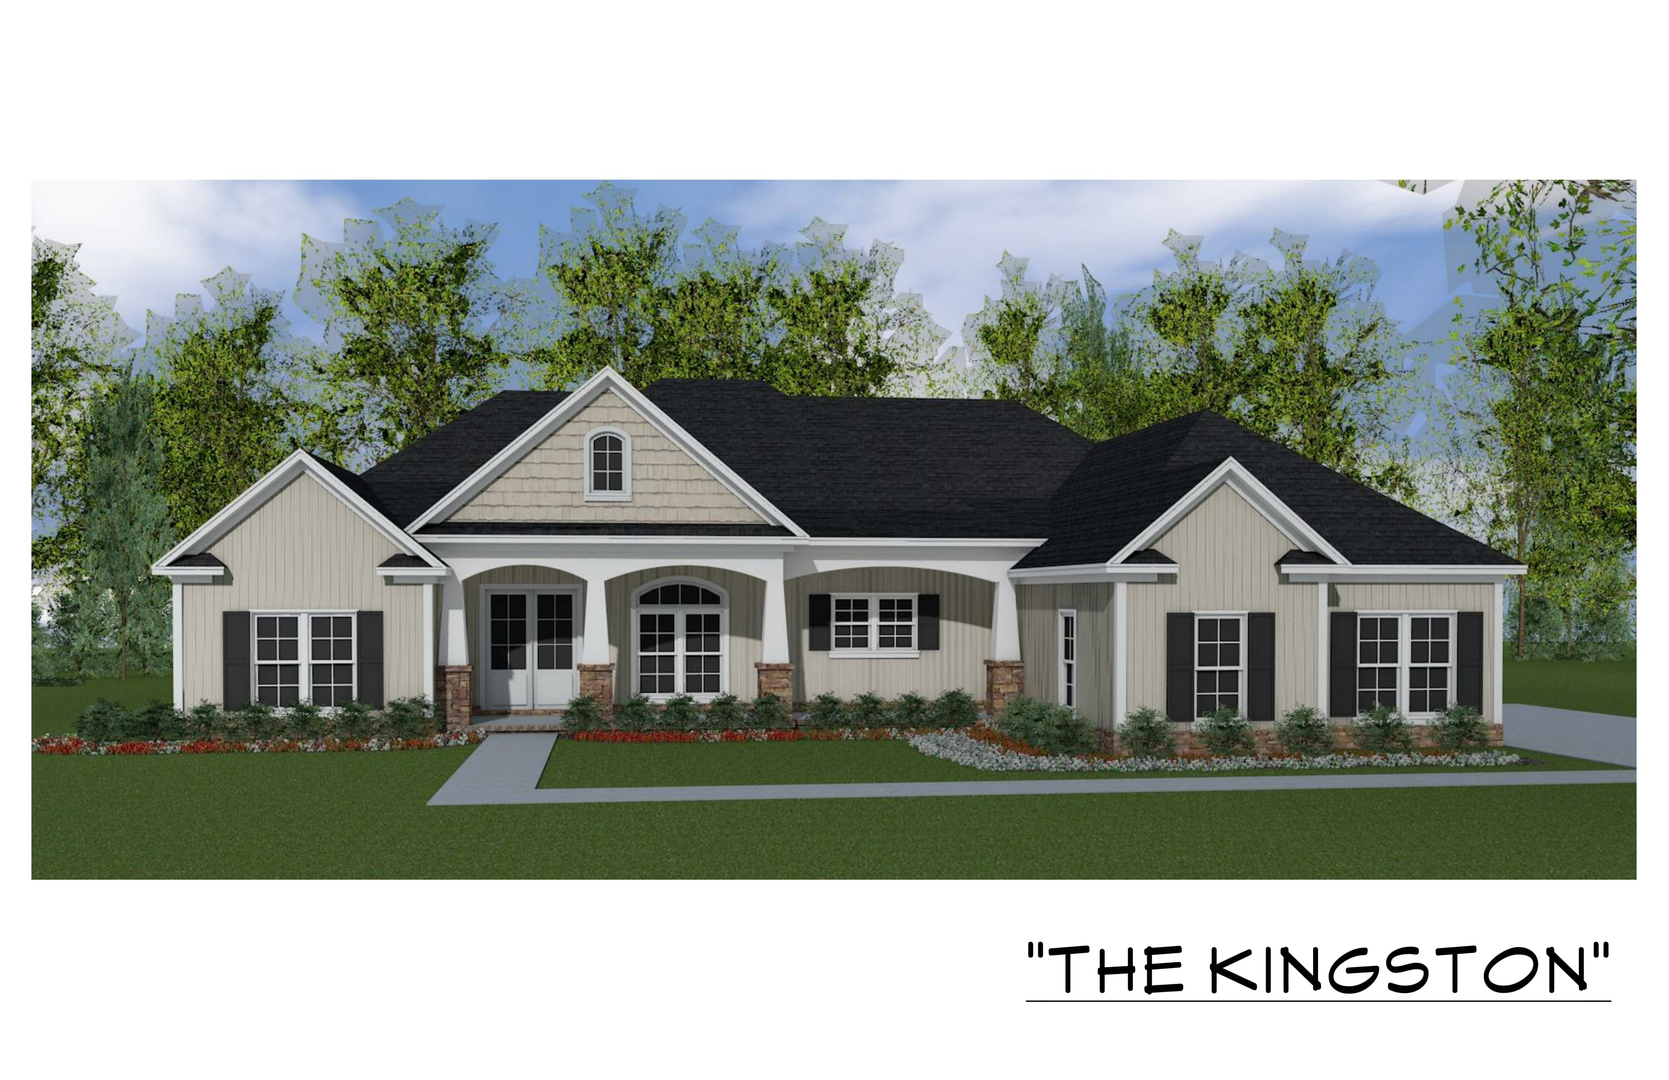 Precision Total Home-Aiken, SC Best Home Builder and Contractor